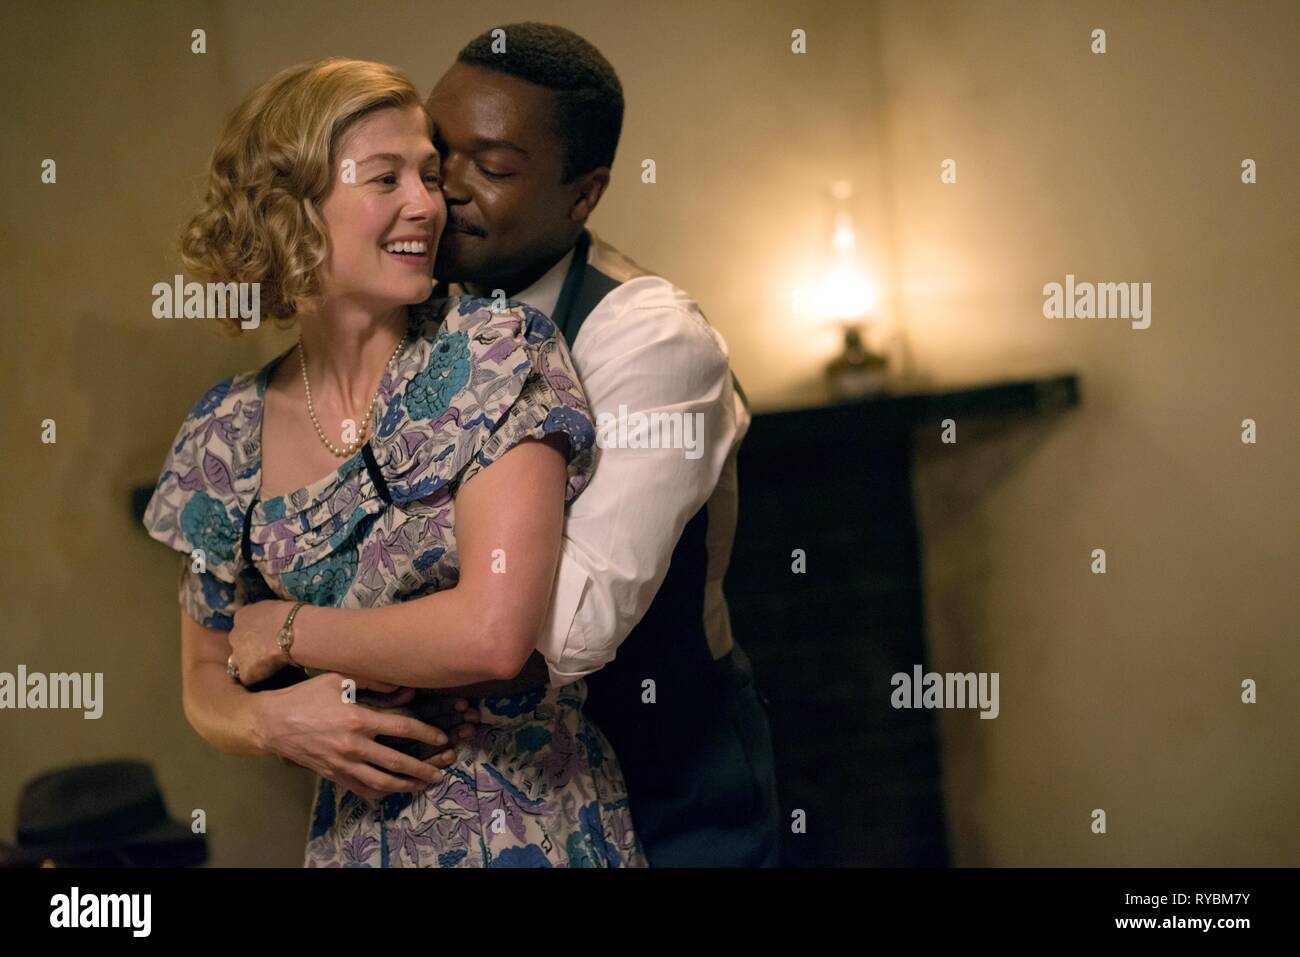 ROSAMUND PIKE, DAVID OYELOWO, A UNITED KINGDOM, 2016 - Stock Image